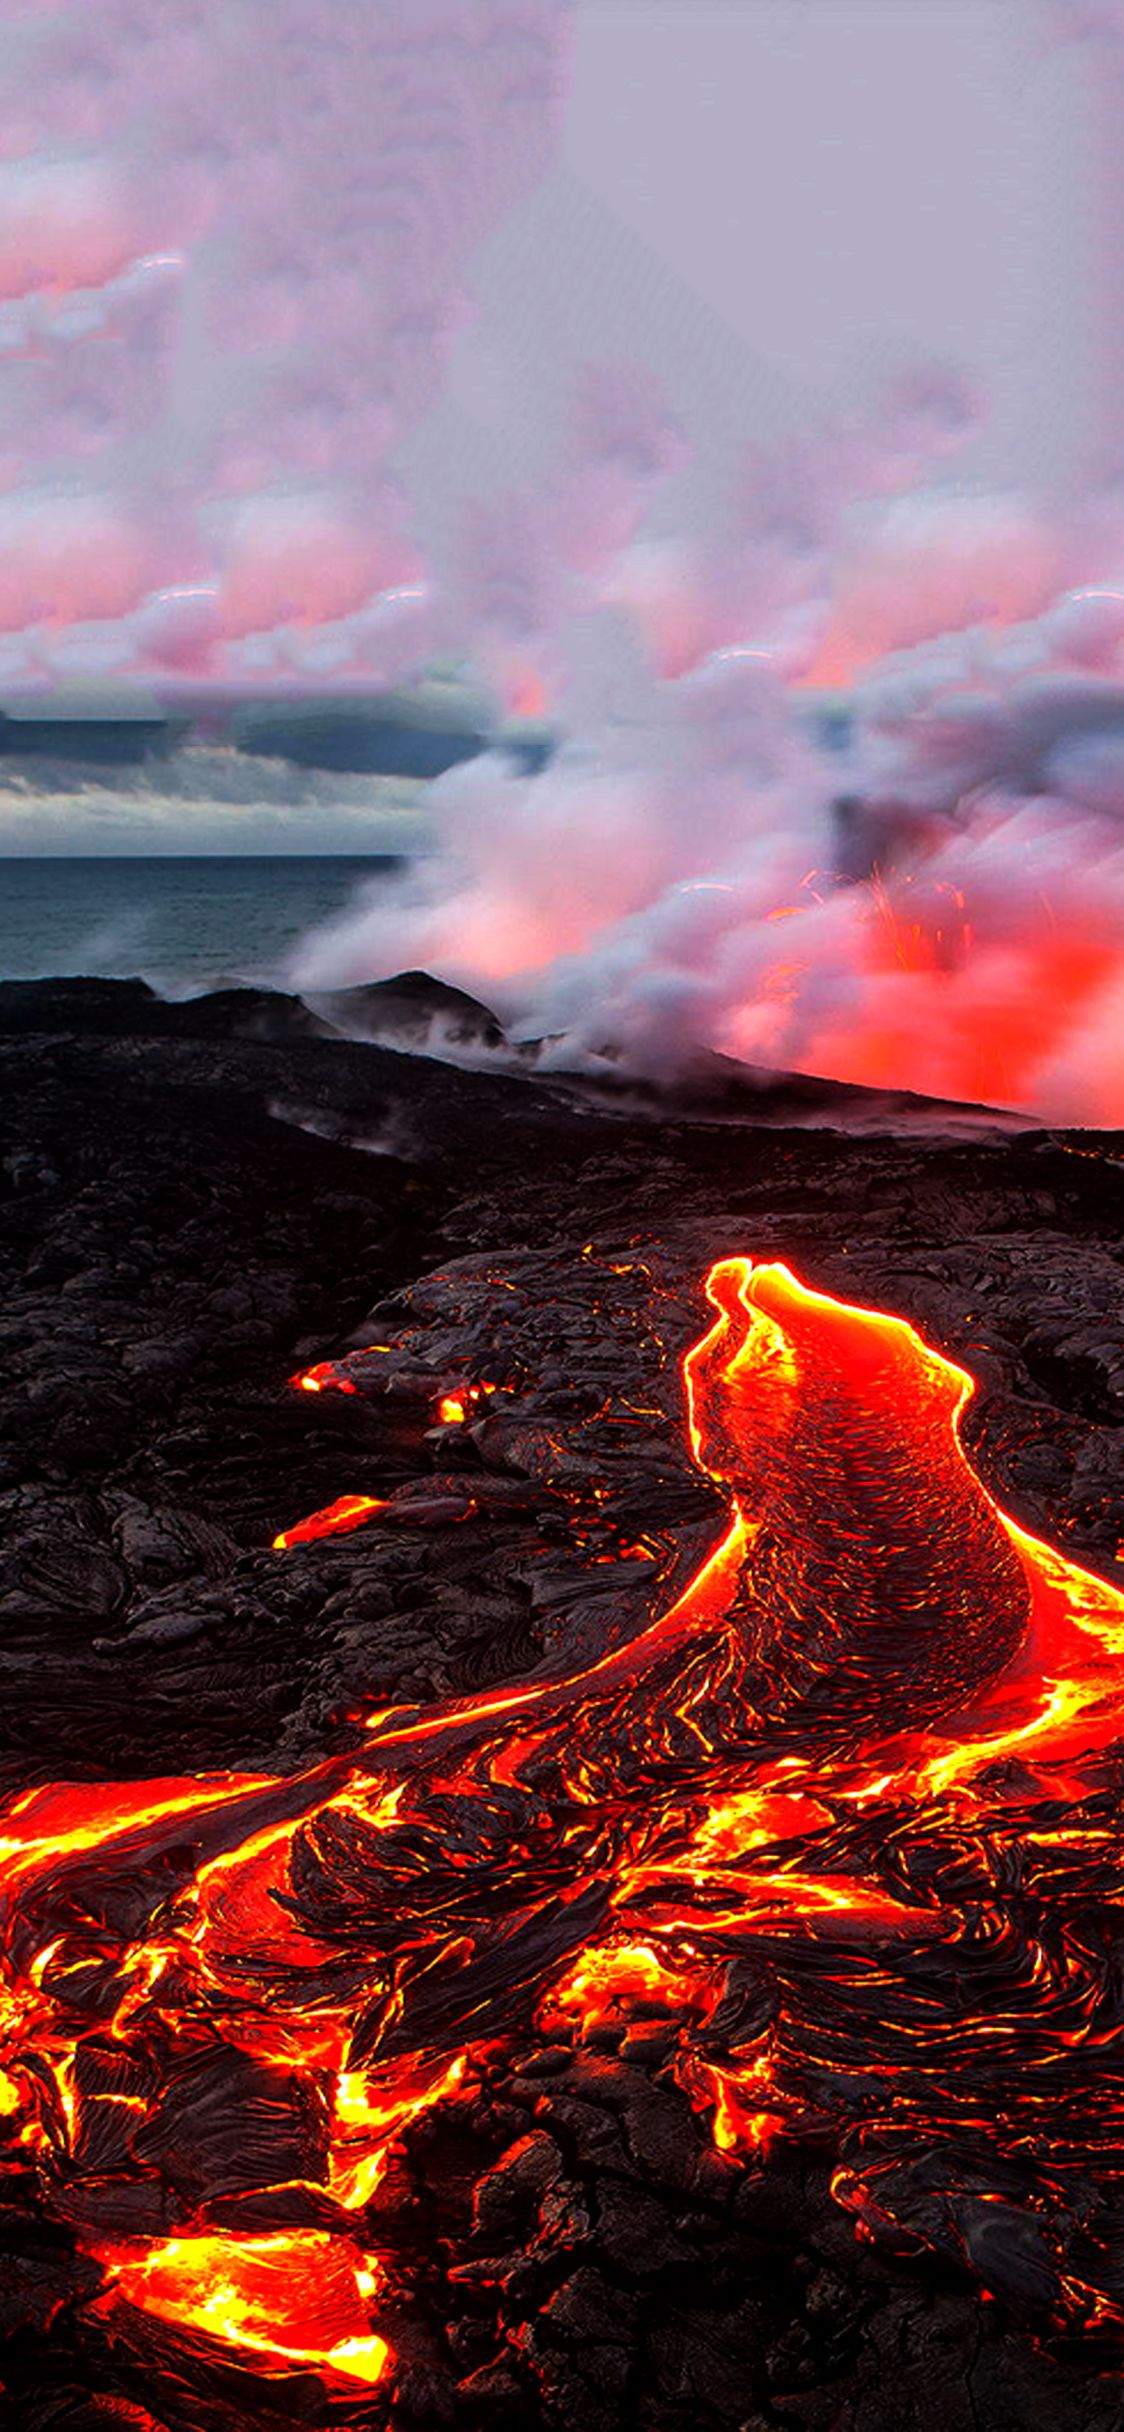 Best volcano wallpaper for iPhone x iOSwall Rugs Carpets 1124x2432